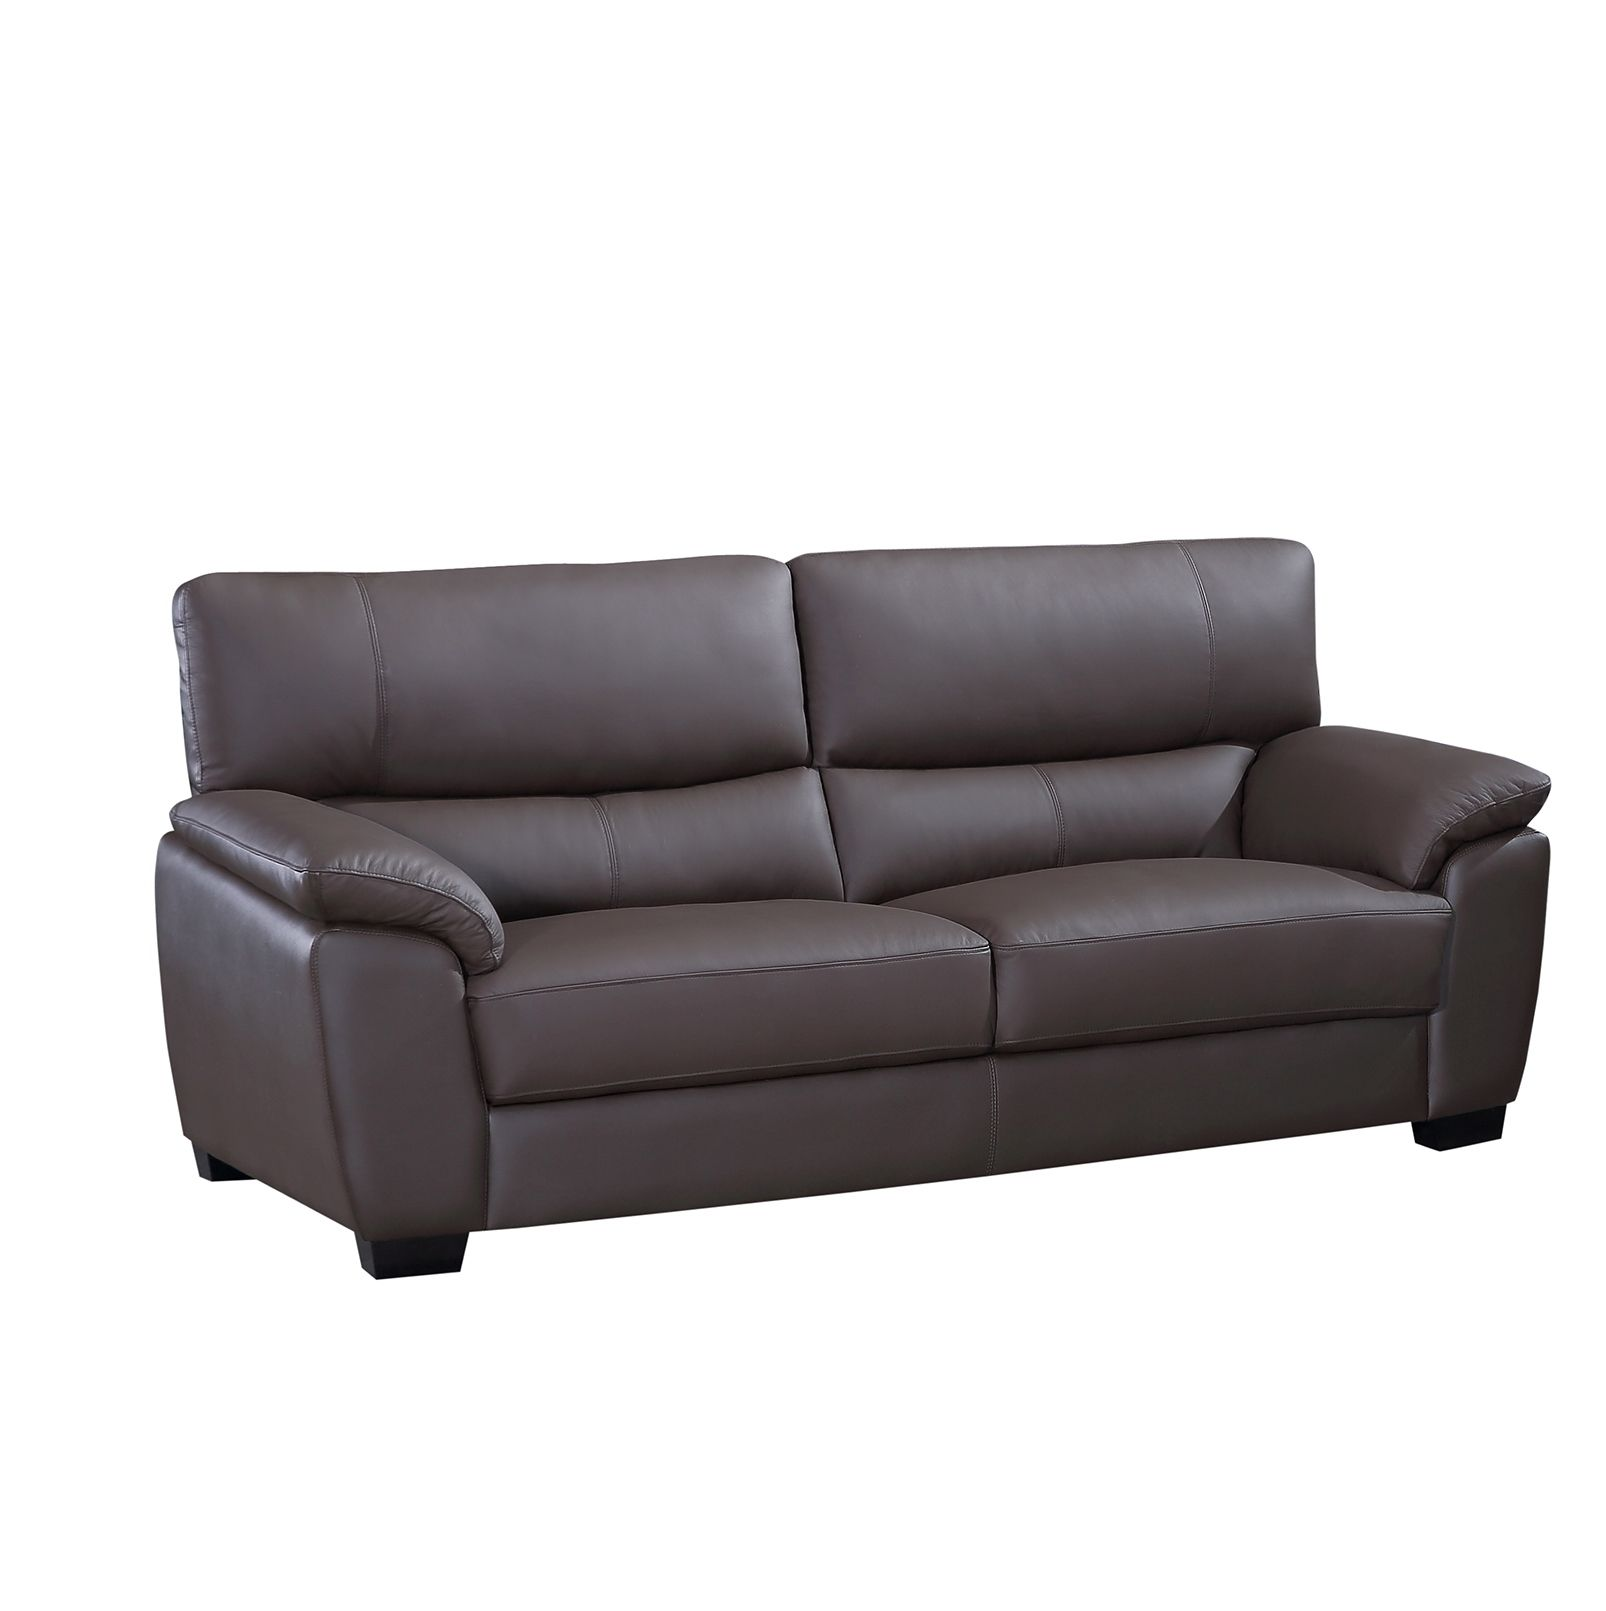 Milton Genuine Leather Sofa Only $1299 Including Tax U0026 Free Local Delivery!  #sofa #